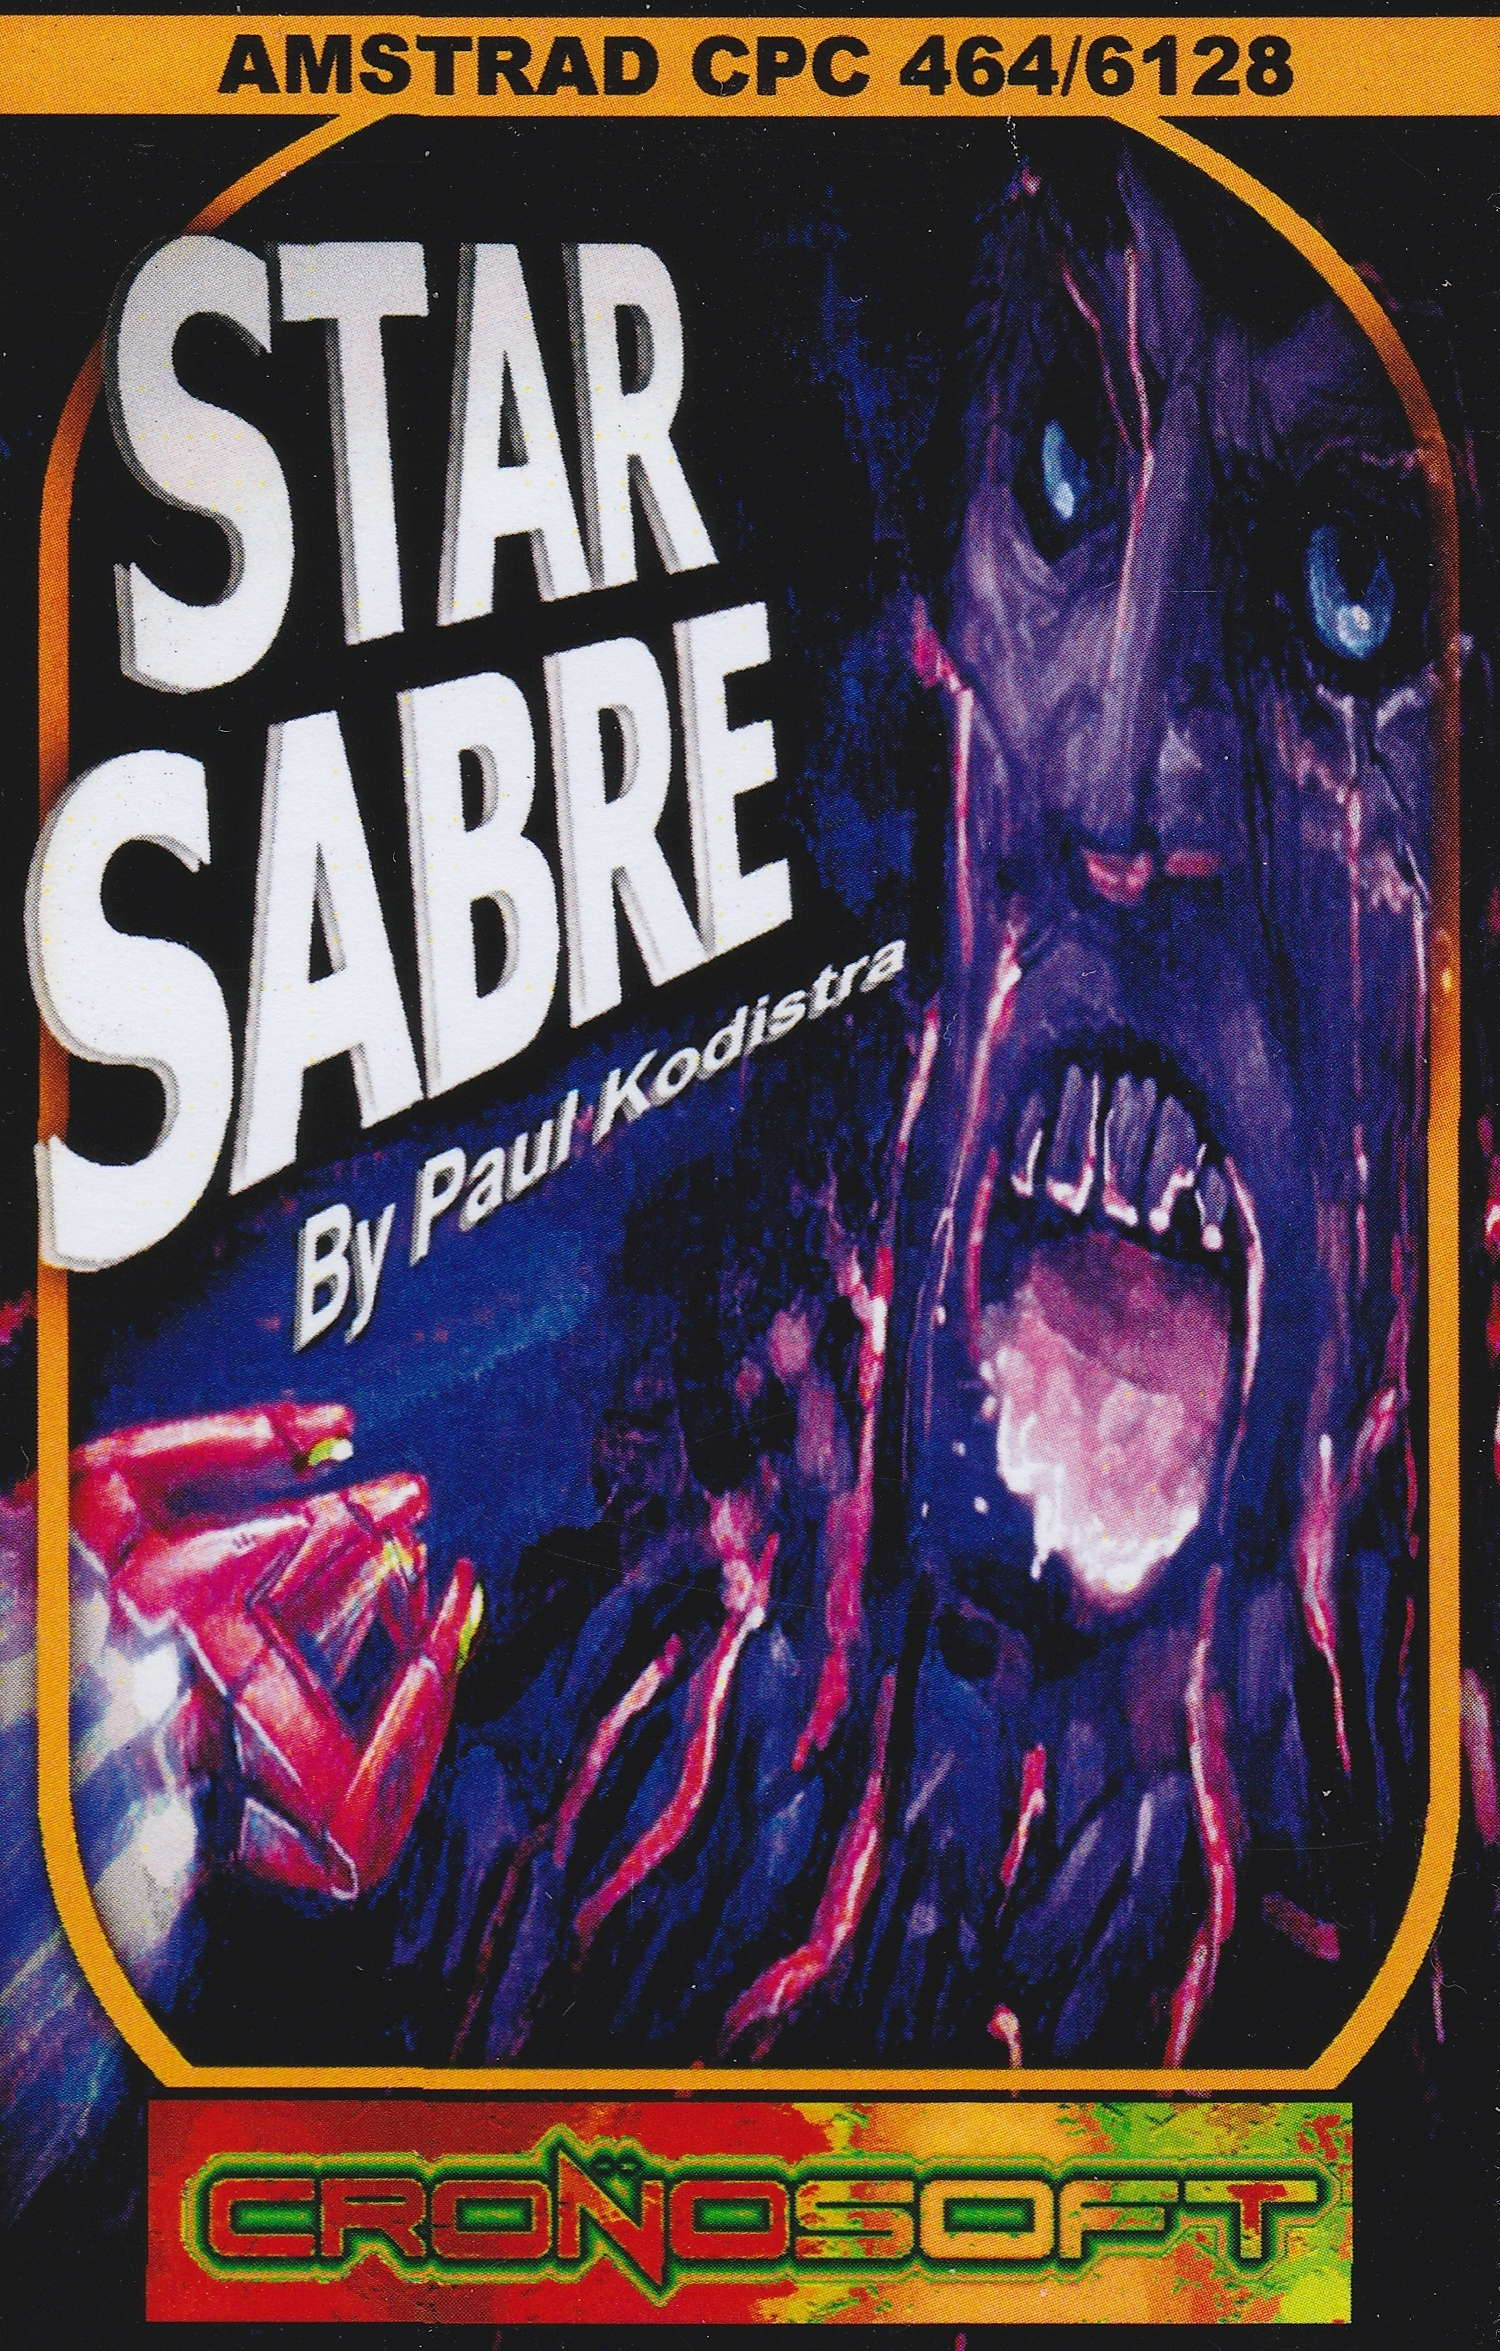 cover of the Amstrad CPC game Star Sabre  by GameBase CPC